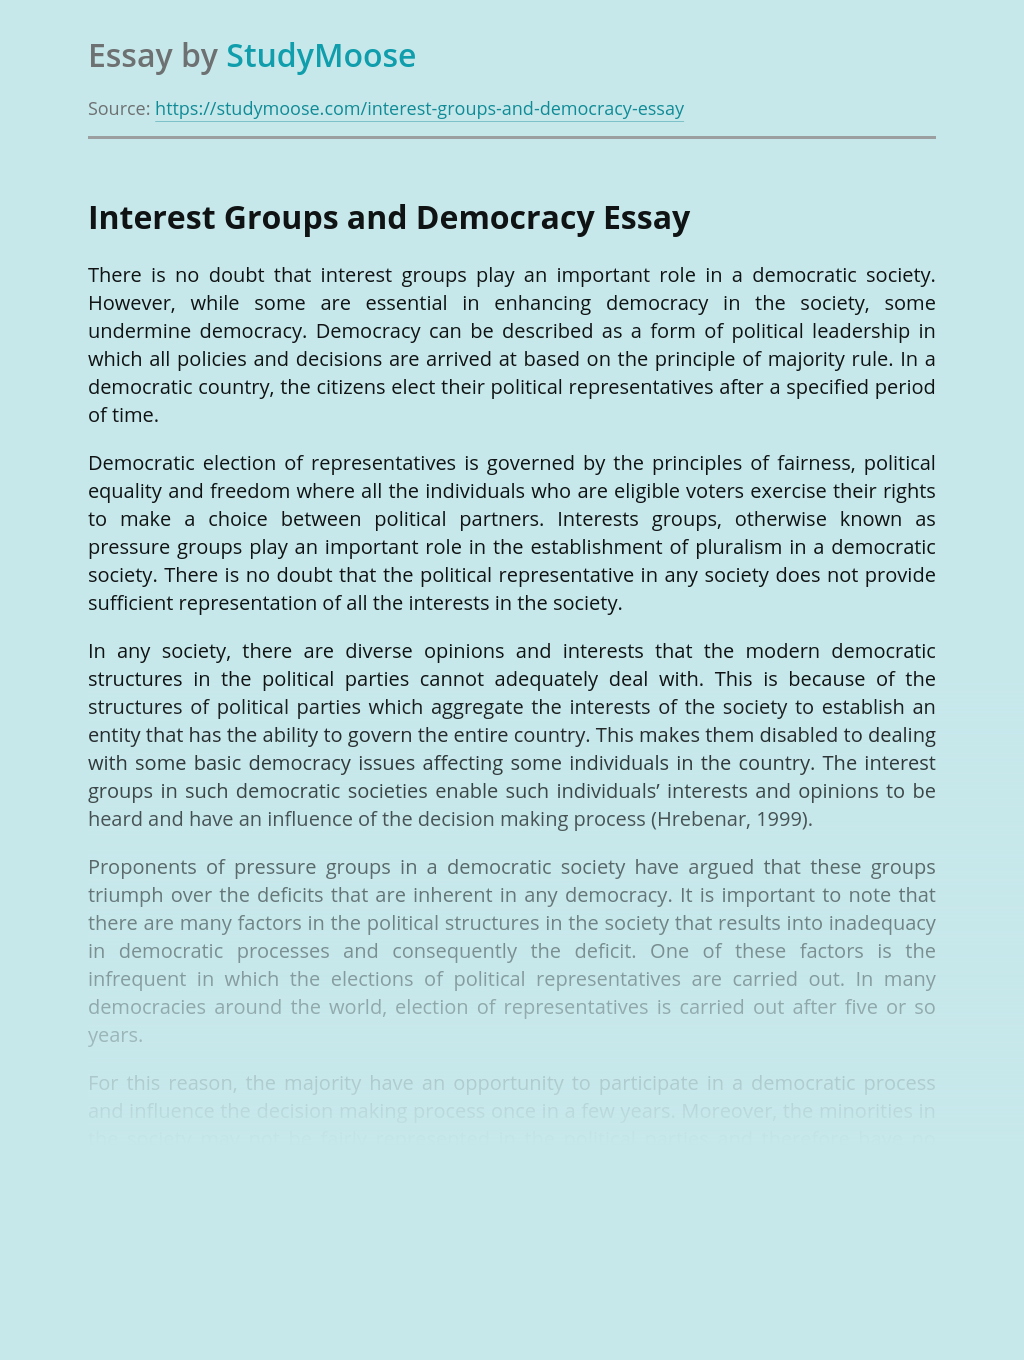 Interest Groups and Democracy